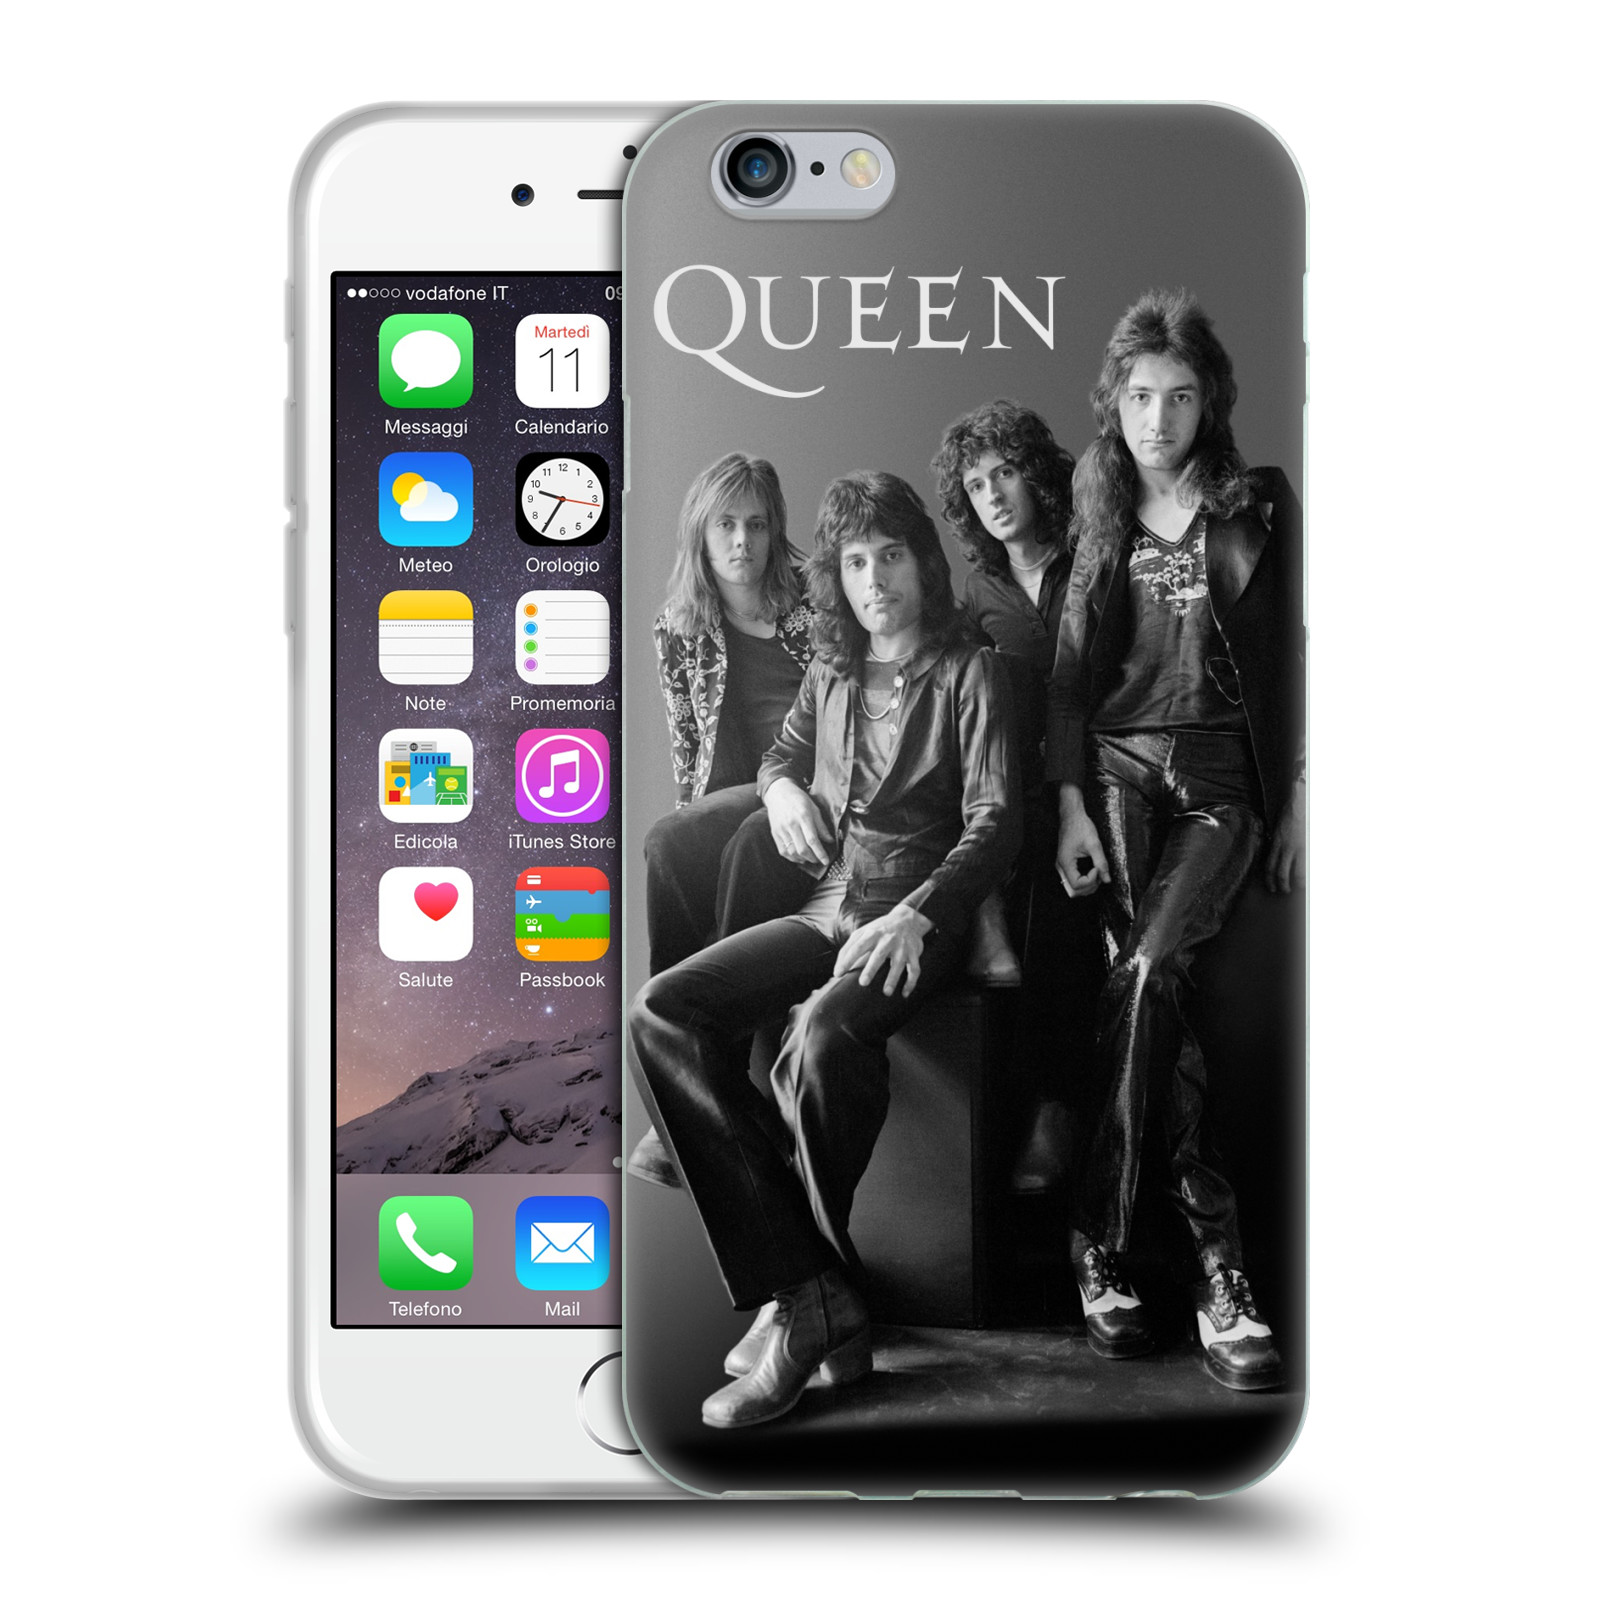 Silikonové pouzdro na mobil Apple iPhone 6 HEAD CASE Queen - Skupina